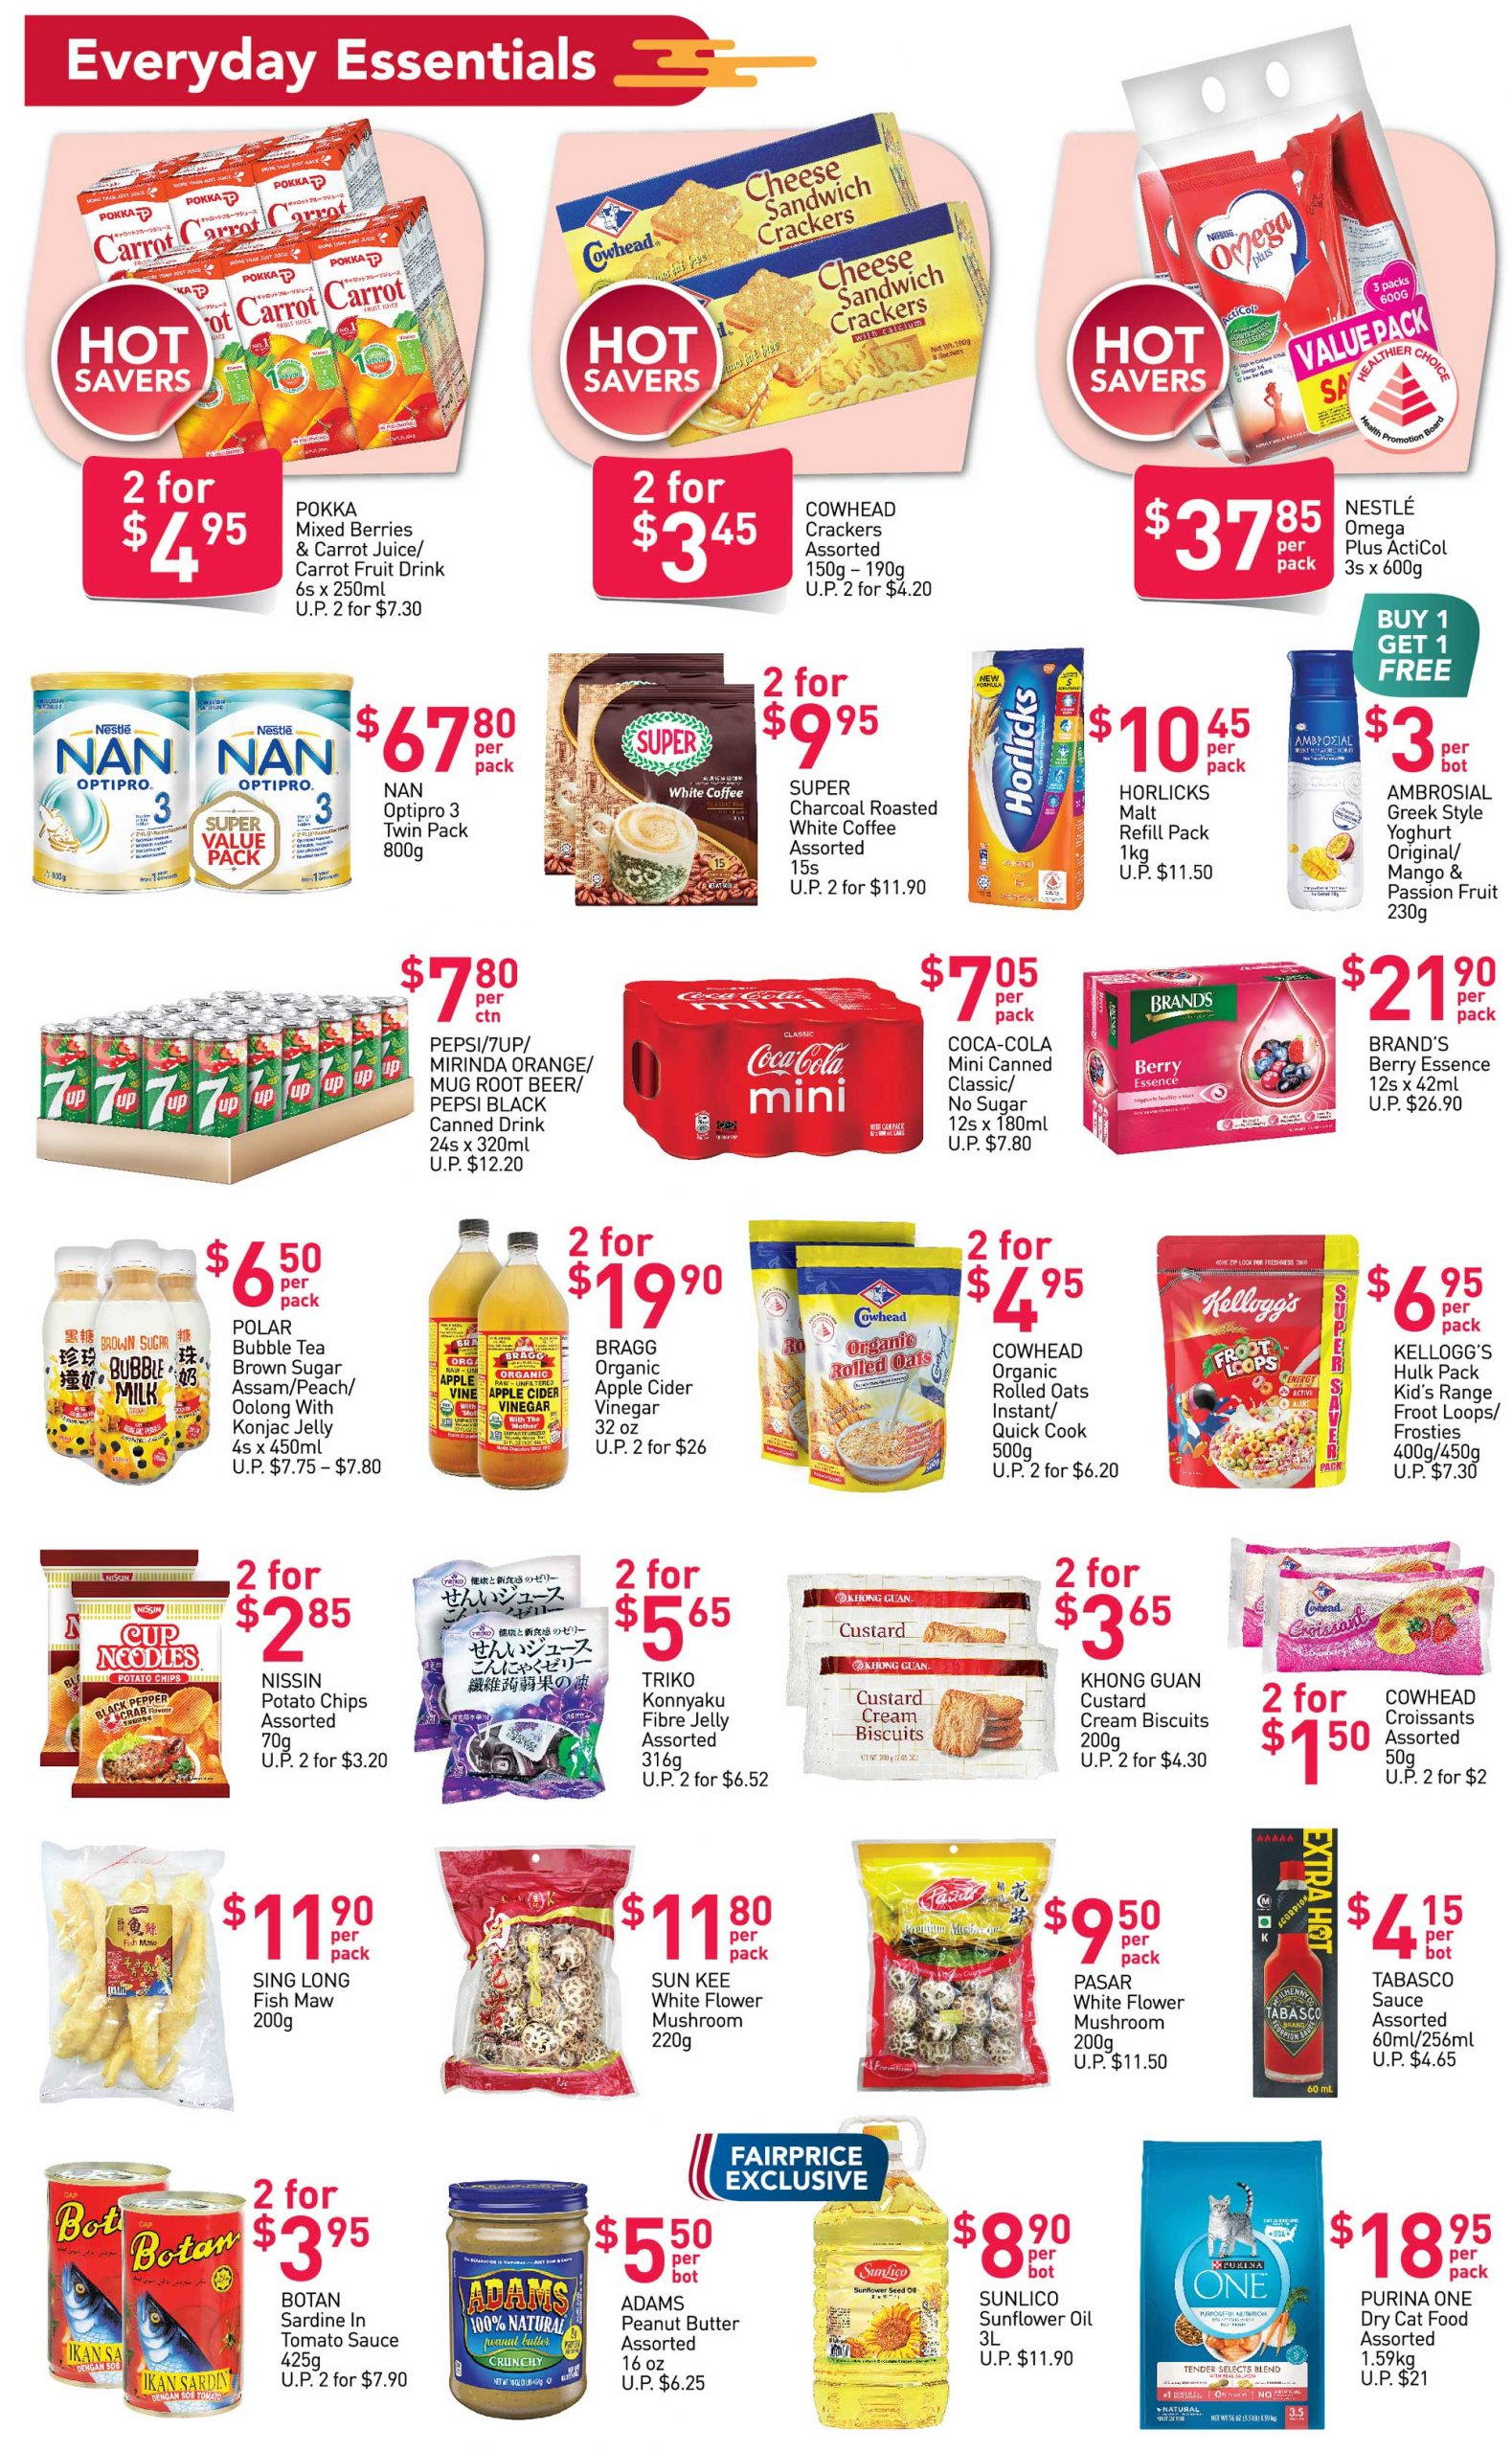 FairPrice's weekly saver deals till 20 January 2021